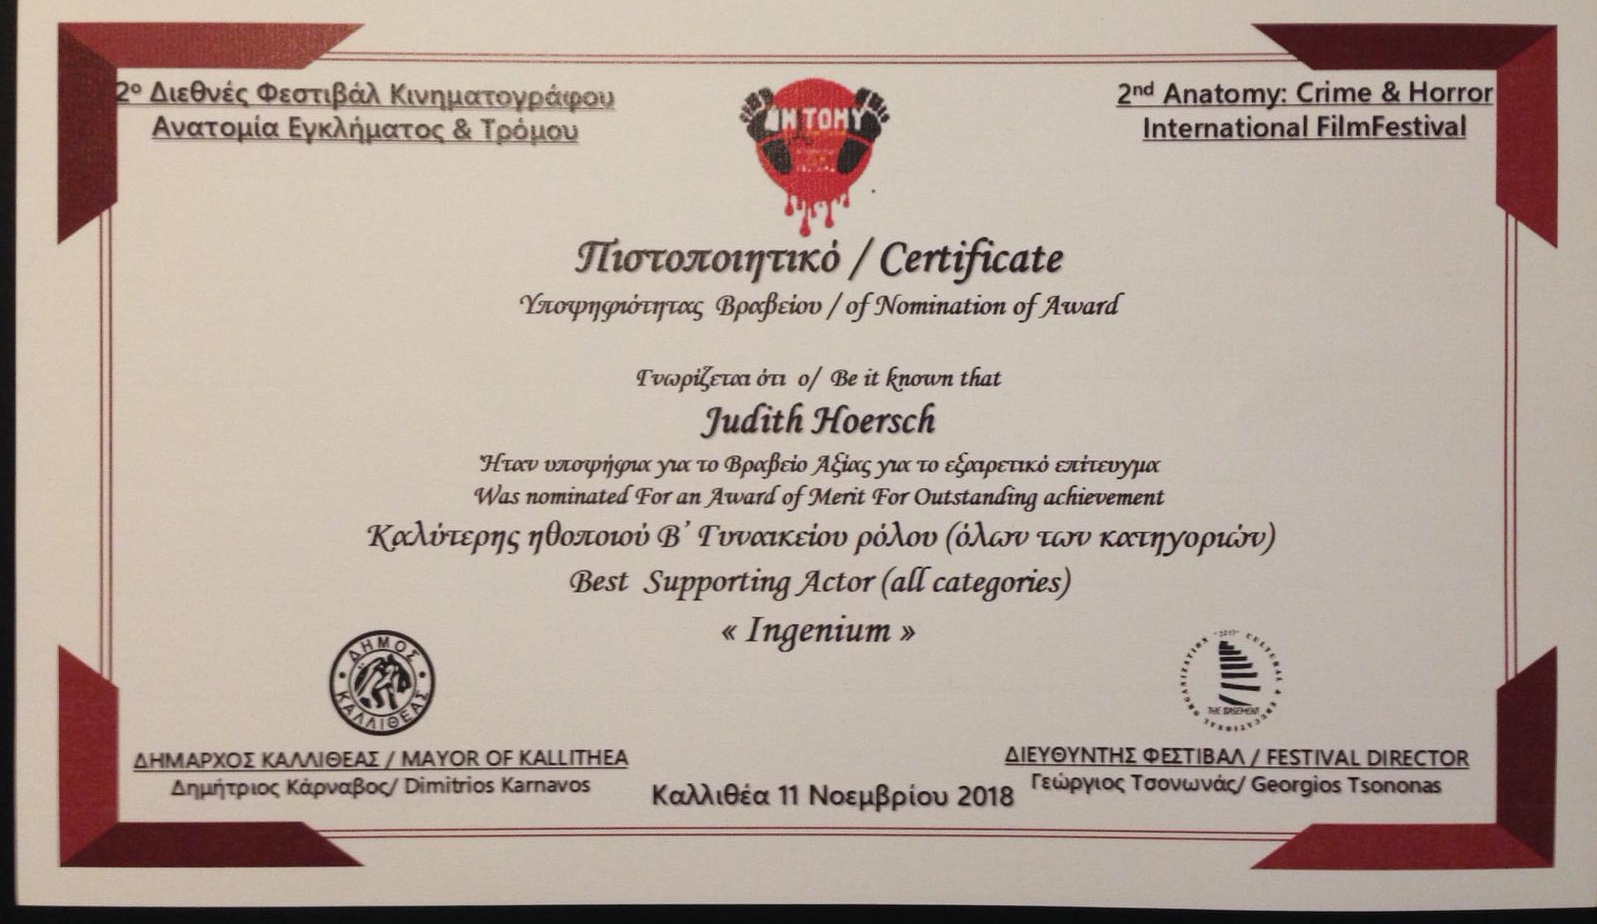 Winner of Best Supporting Actress in all Categories in Athen!